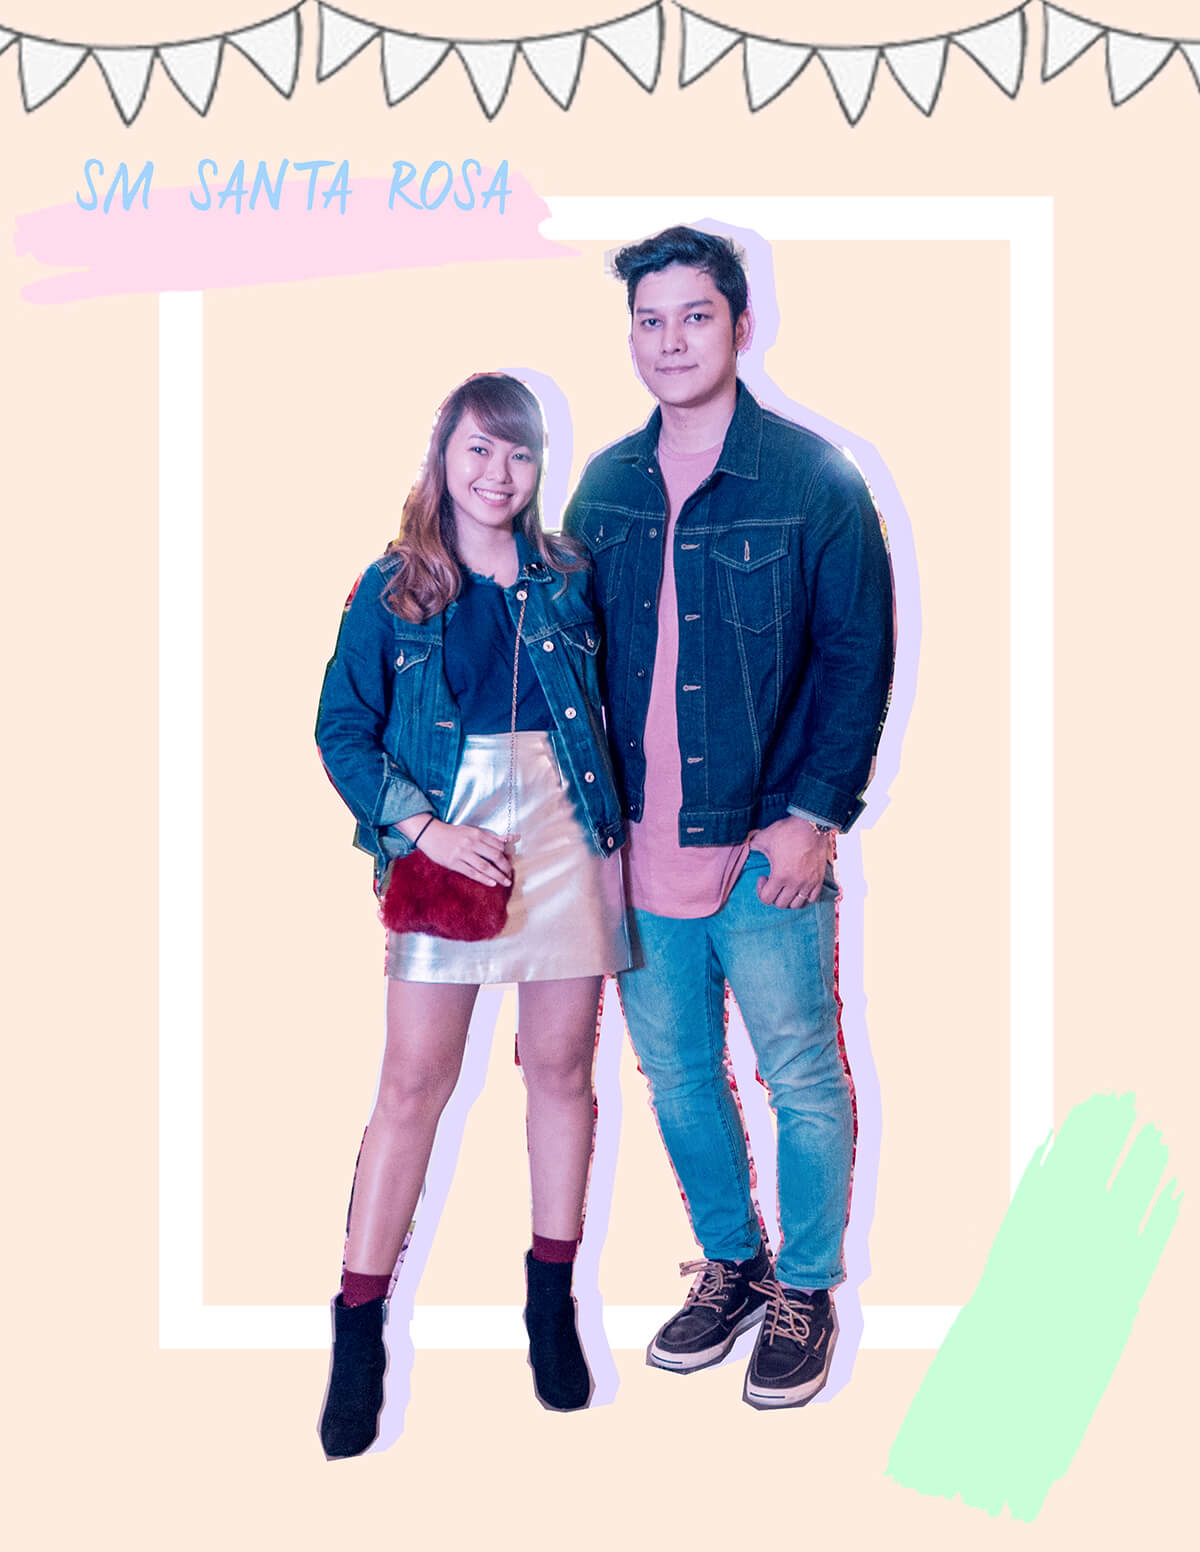 Seph Cham and Trice Nagusara at SM Santa Rosa